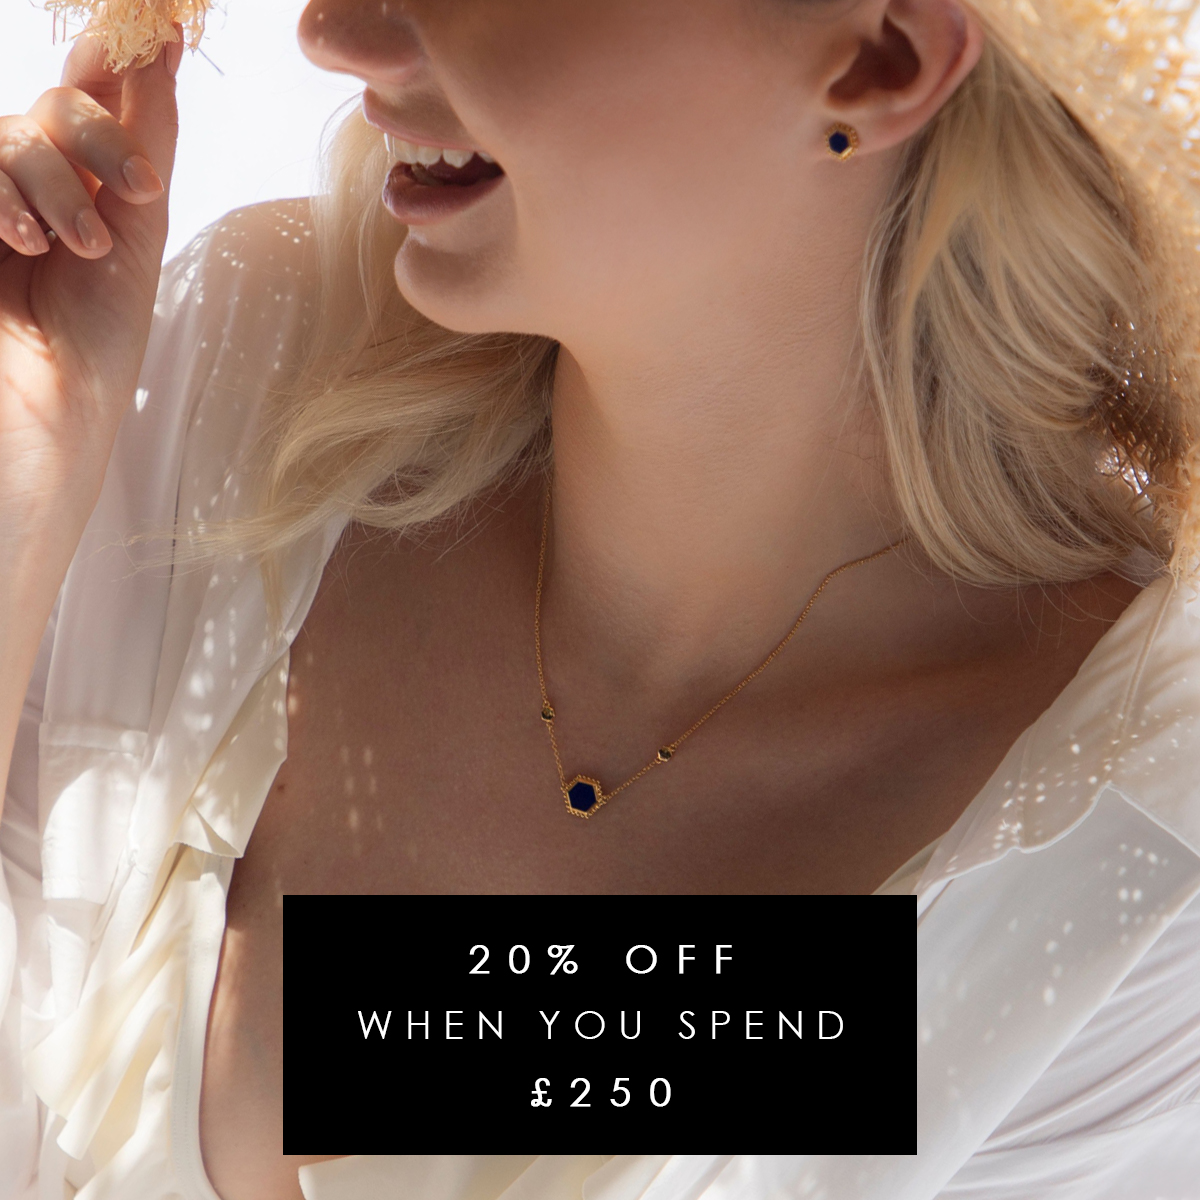 Save 20% when you spend £250 at Gemondo jewellery